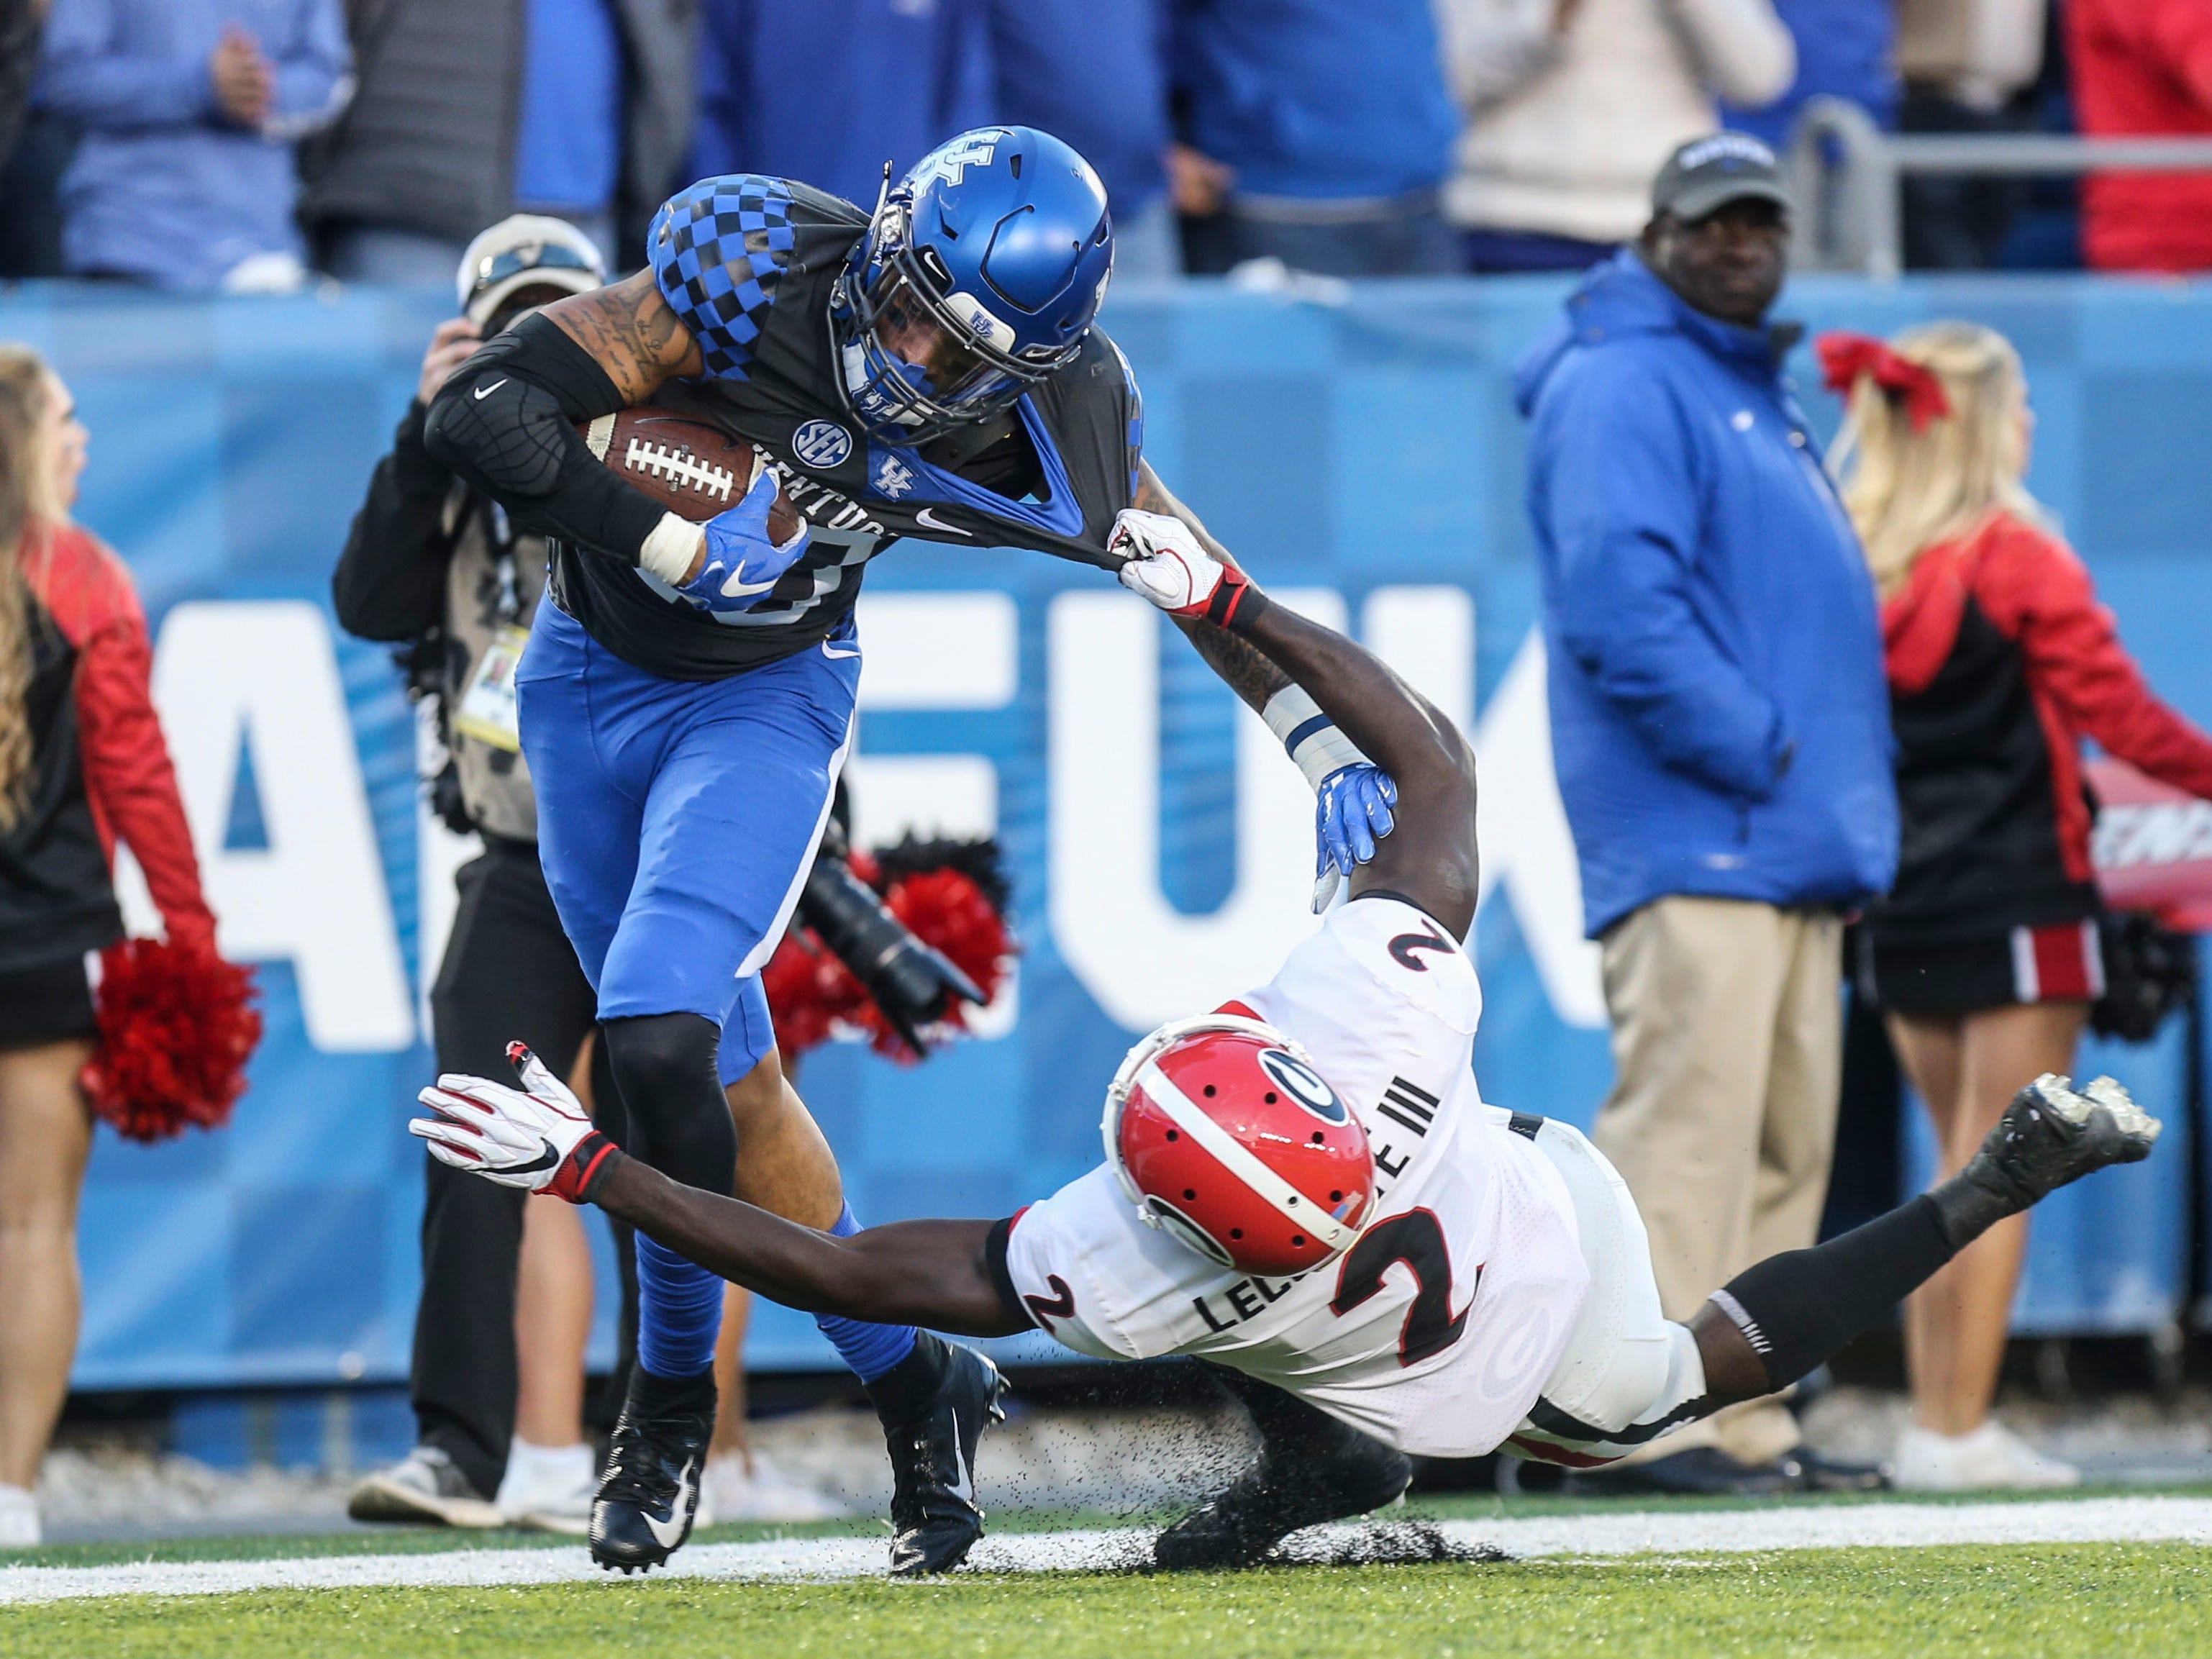 Kentucky's A.J. Rose couldn't be stopped by Georgia's Richard Lecounte as he scored a second half touchdown Saturday. However, the Bulldogs proved too much for the Wildcats. Nov. 3, 2018